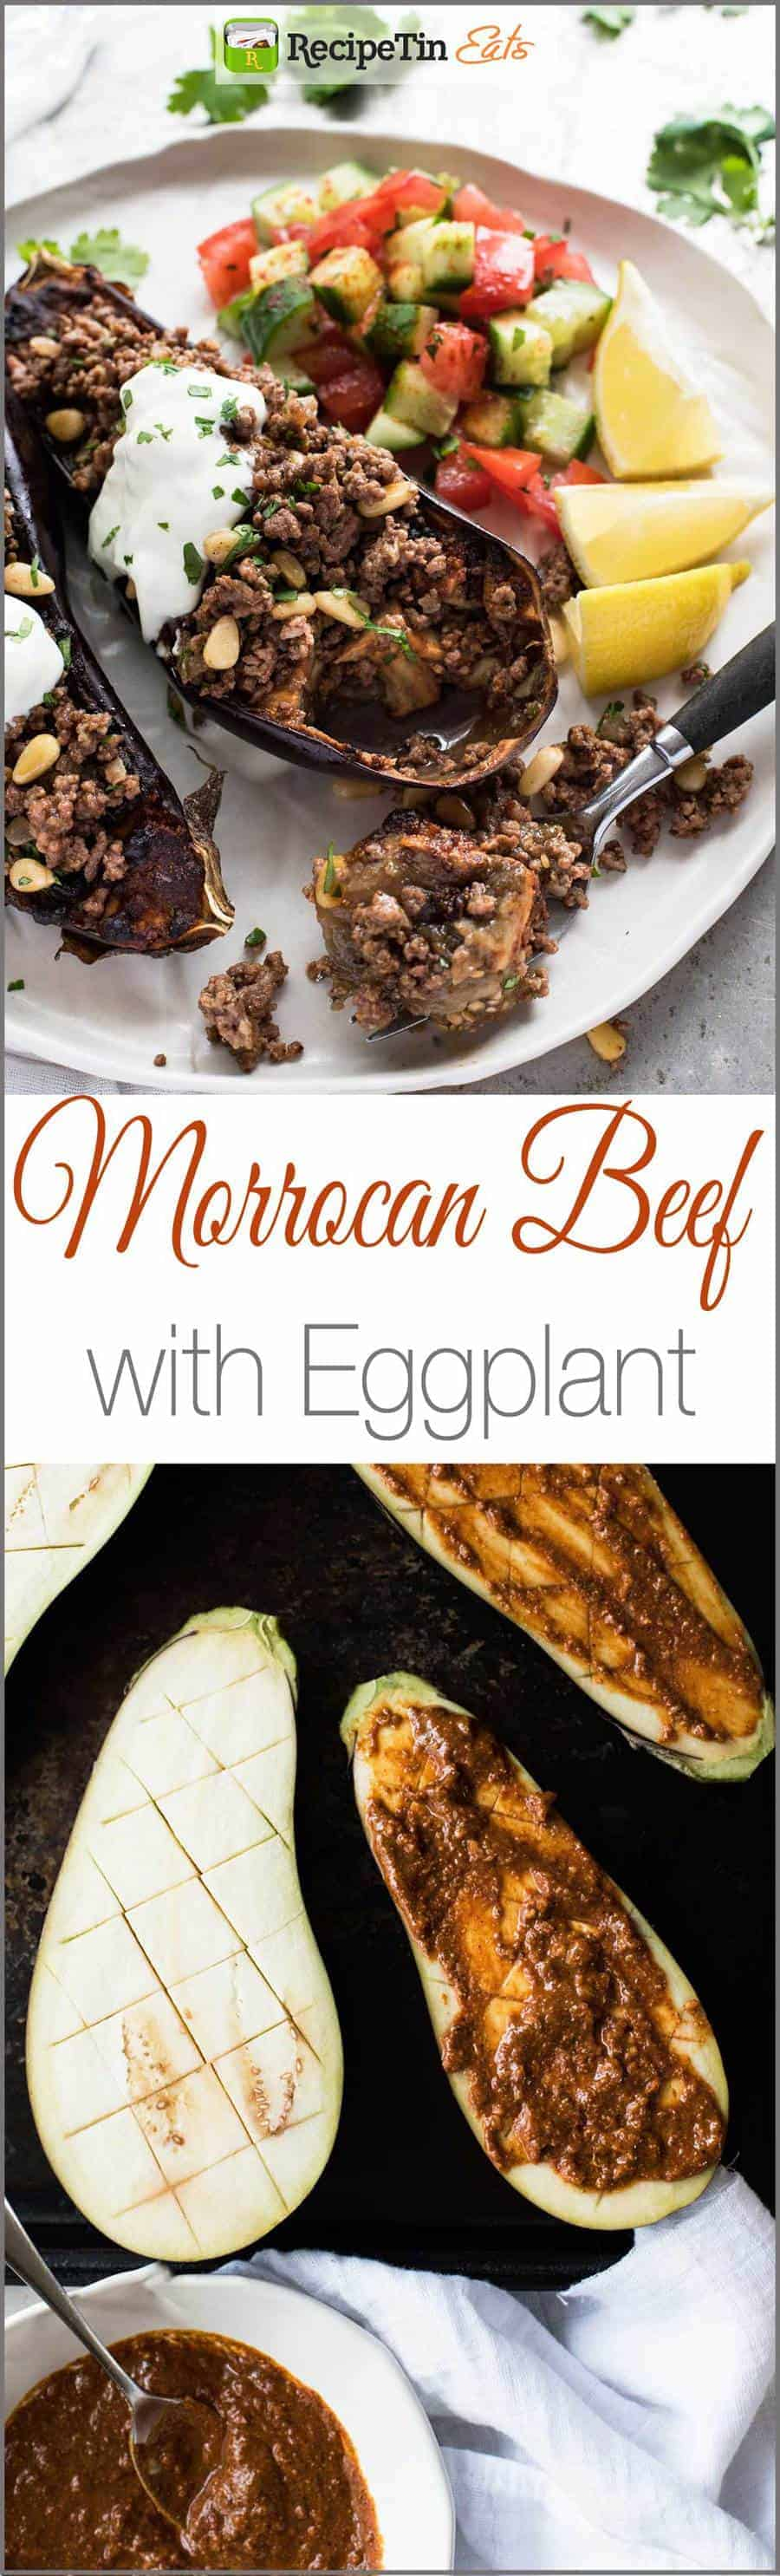 Moroccan Baked Eggplant with Beef - A simple but amazing spice mix forms the base of this incredible meal that happens to only be 460 calories a serving.